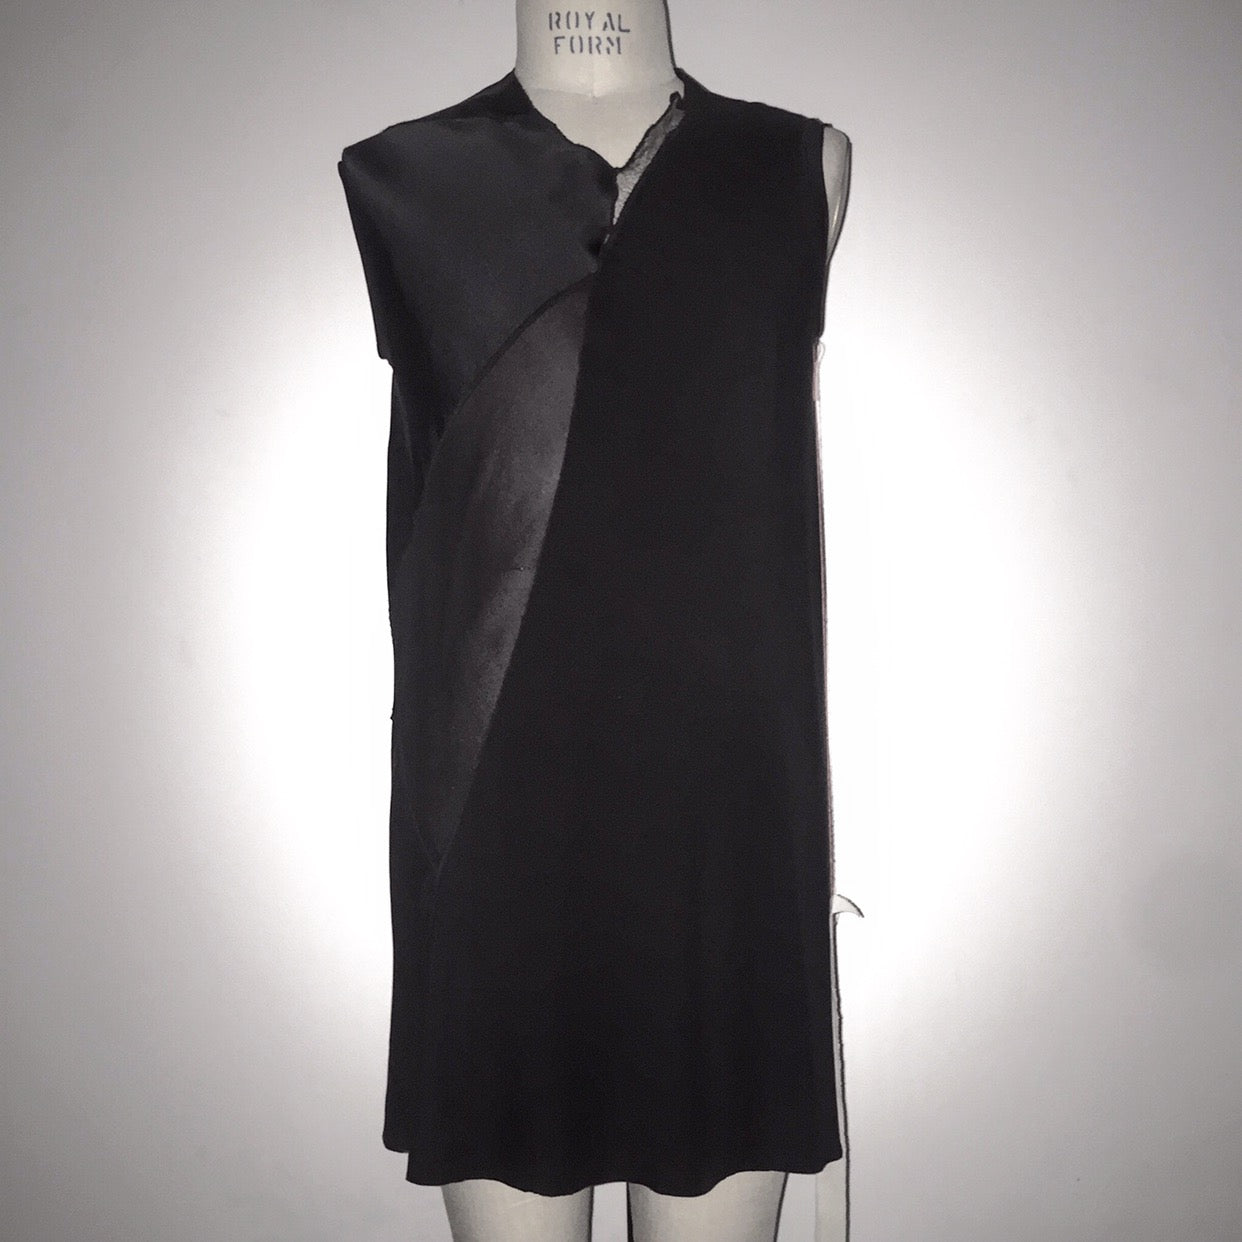 agender | kammacloth...one of a kind...medium, sleeveless tunic... ready to buy